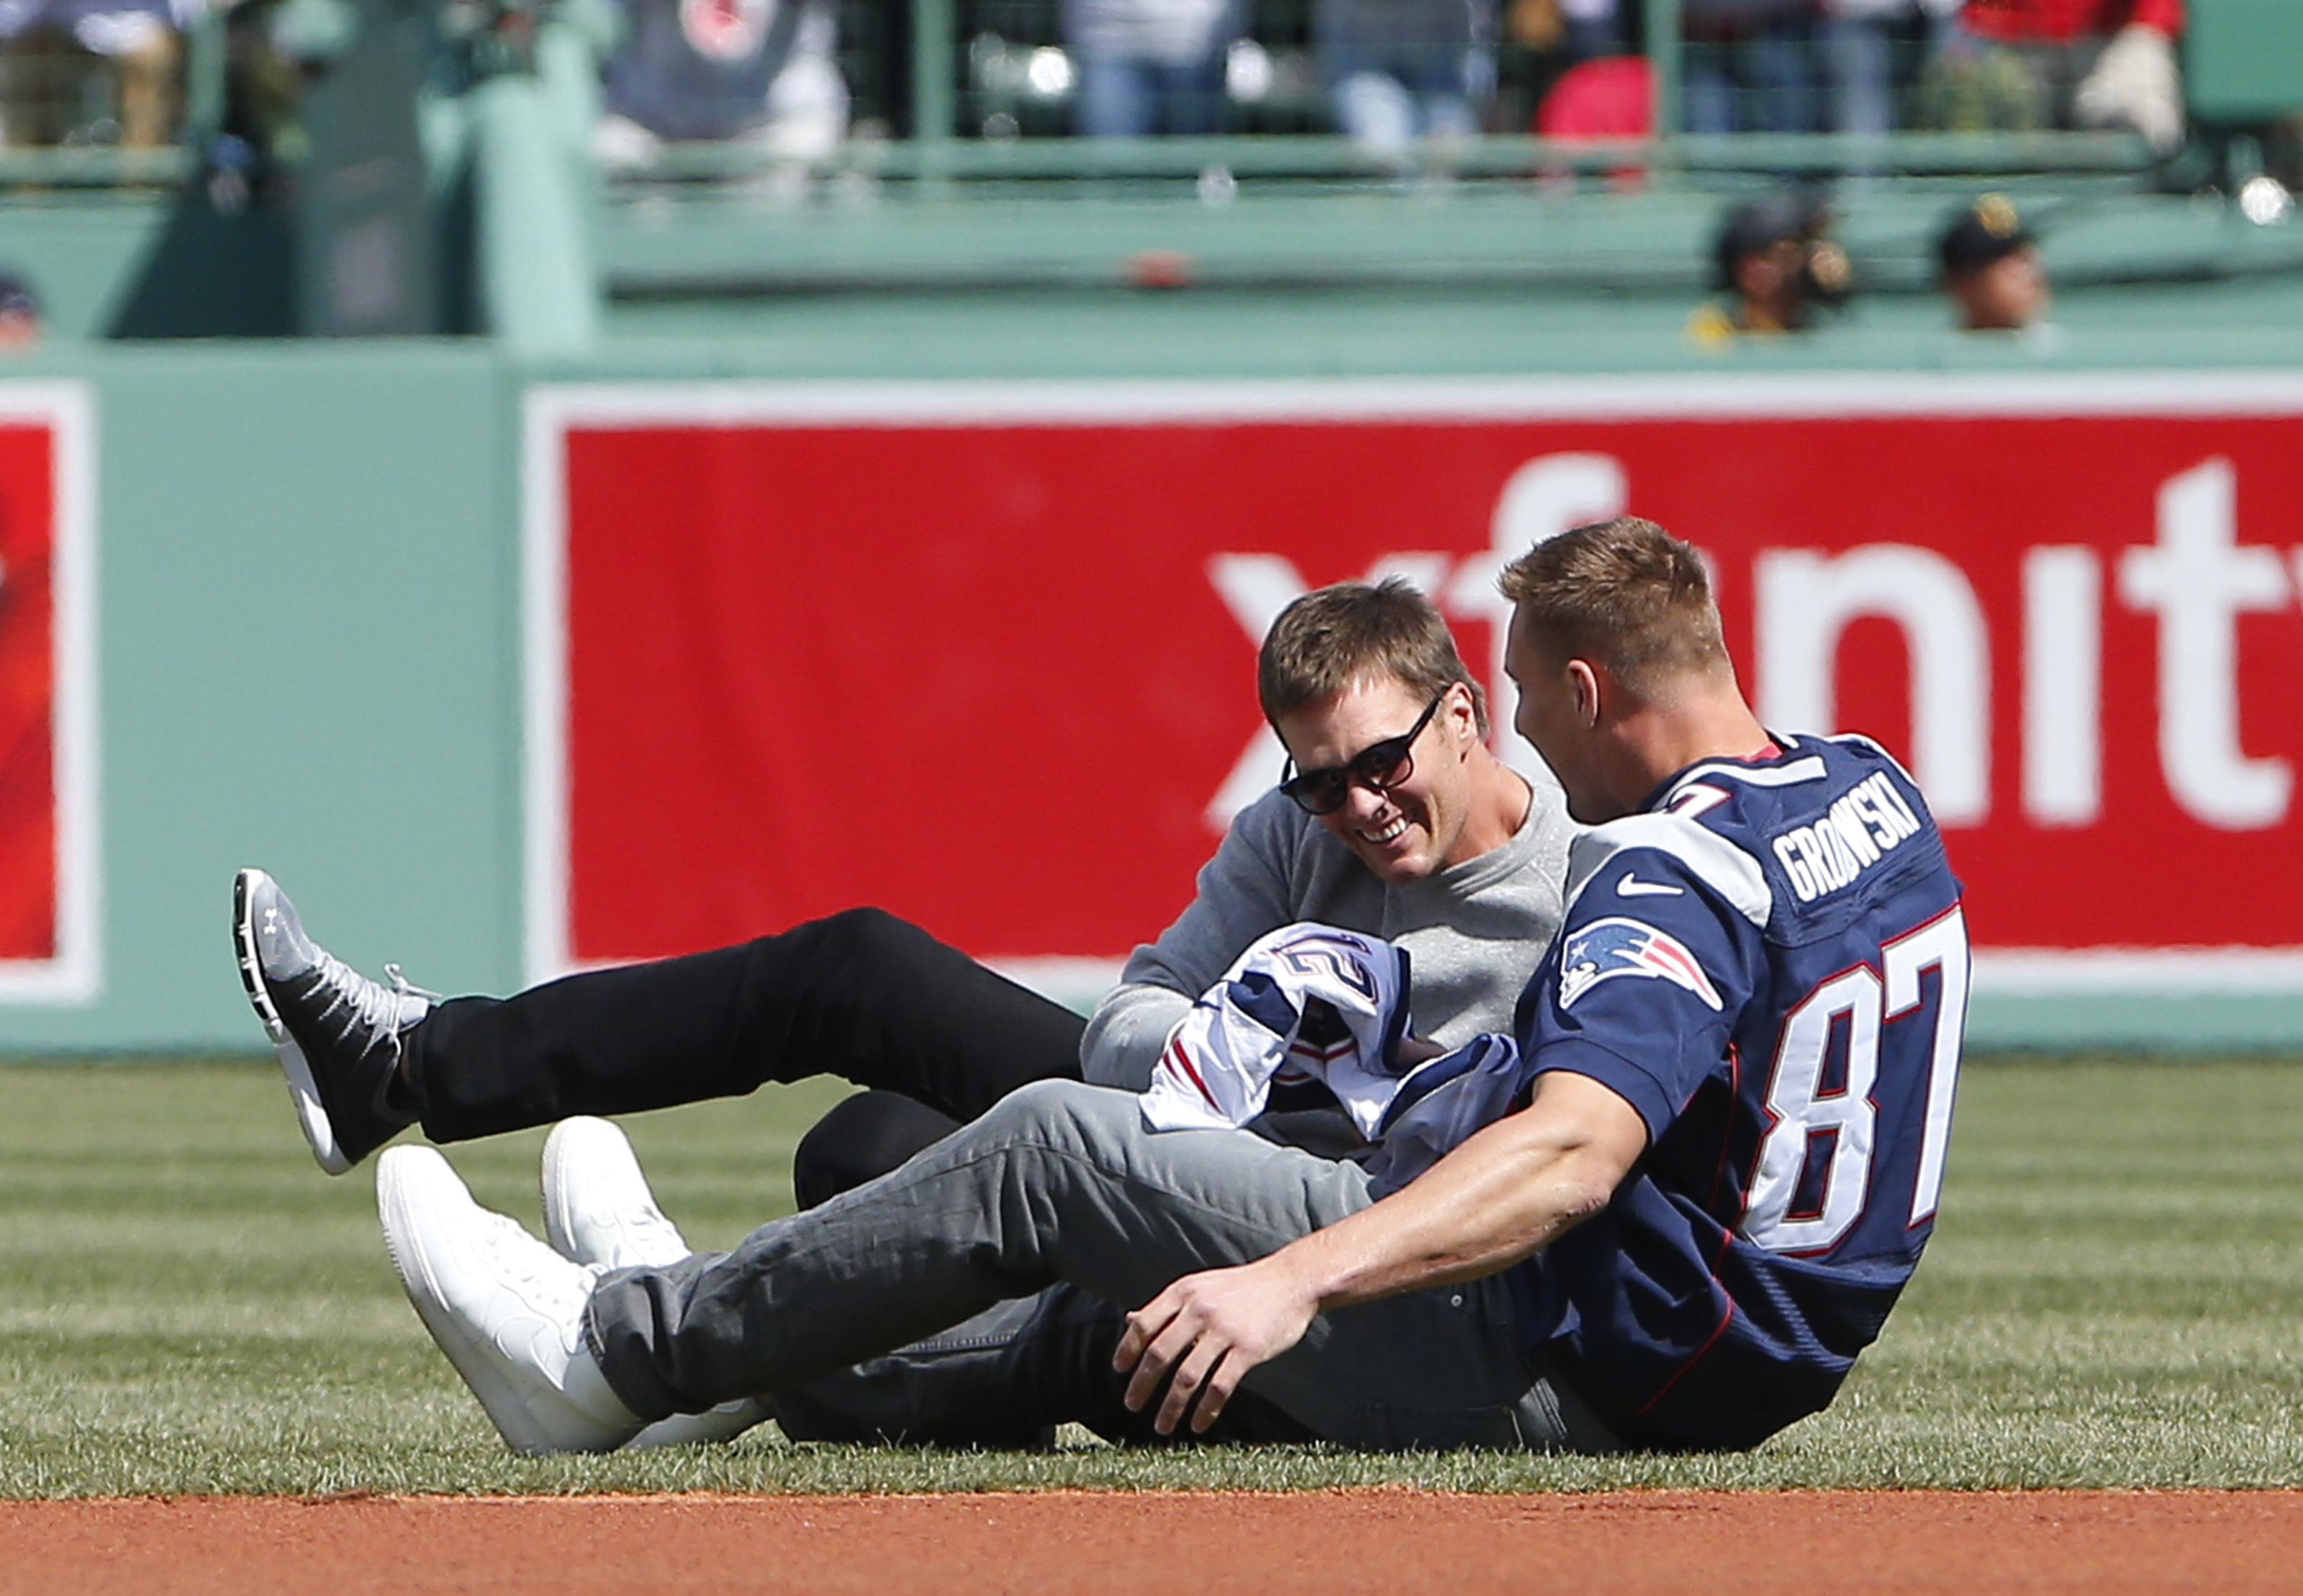 Play-by-play: Gronk 'steals' Brady's jersey at Fenway - The Boston ...